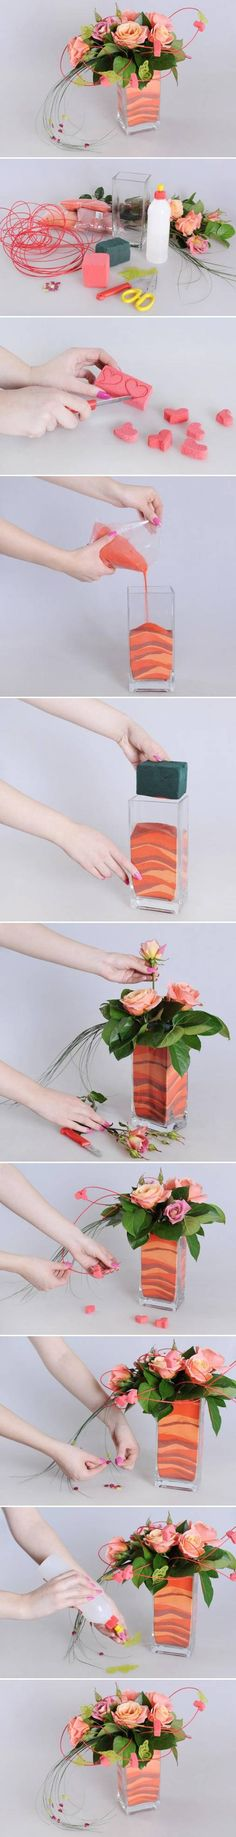 DIY Flower Vase with Sand